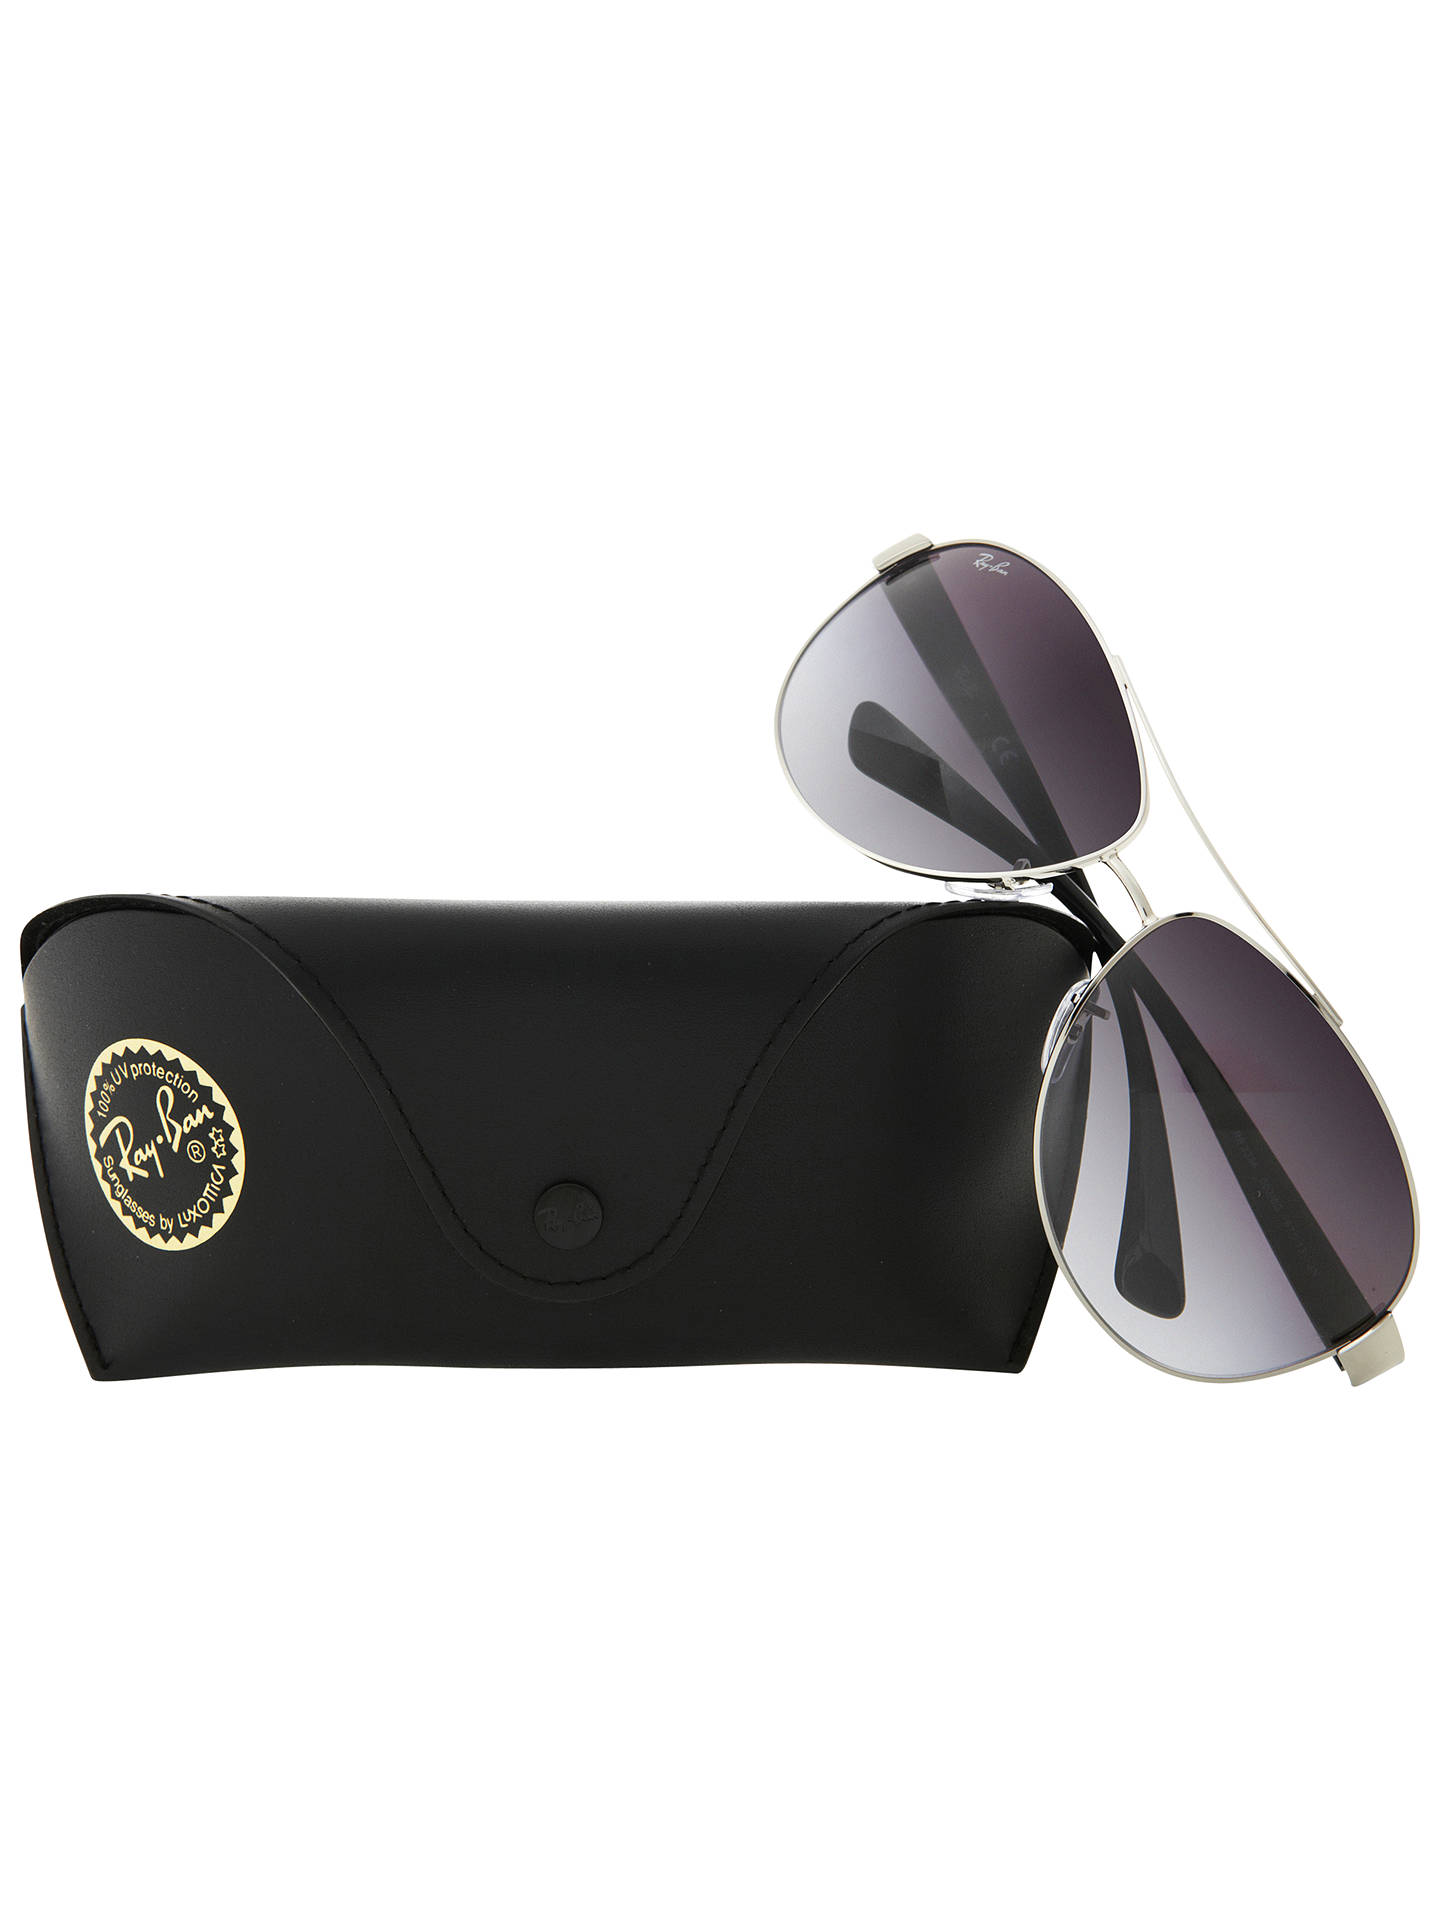 BuyRay-Ban RB3386 Oval Aviator Sunglasses, Silver/Grey Online at johnlewis.com